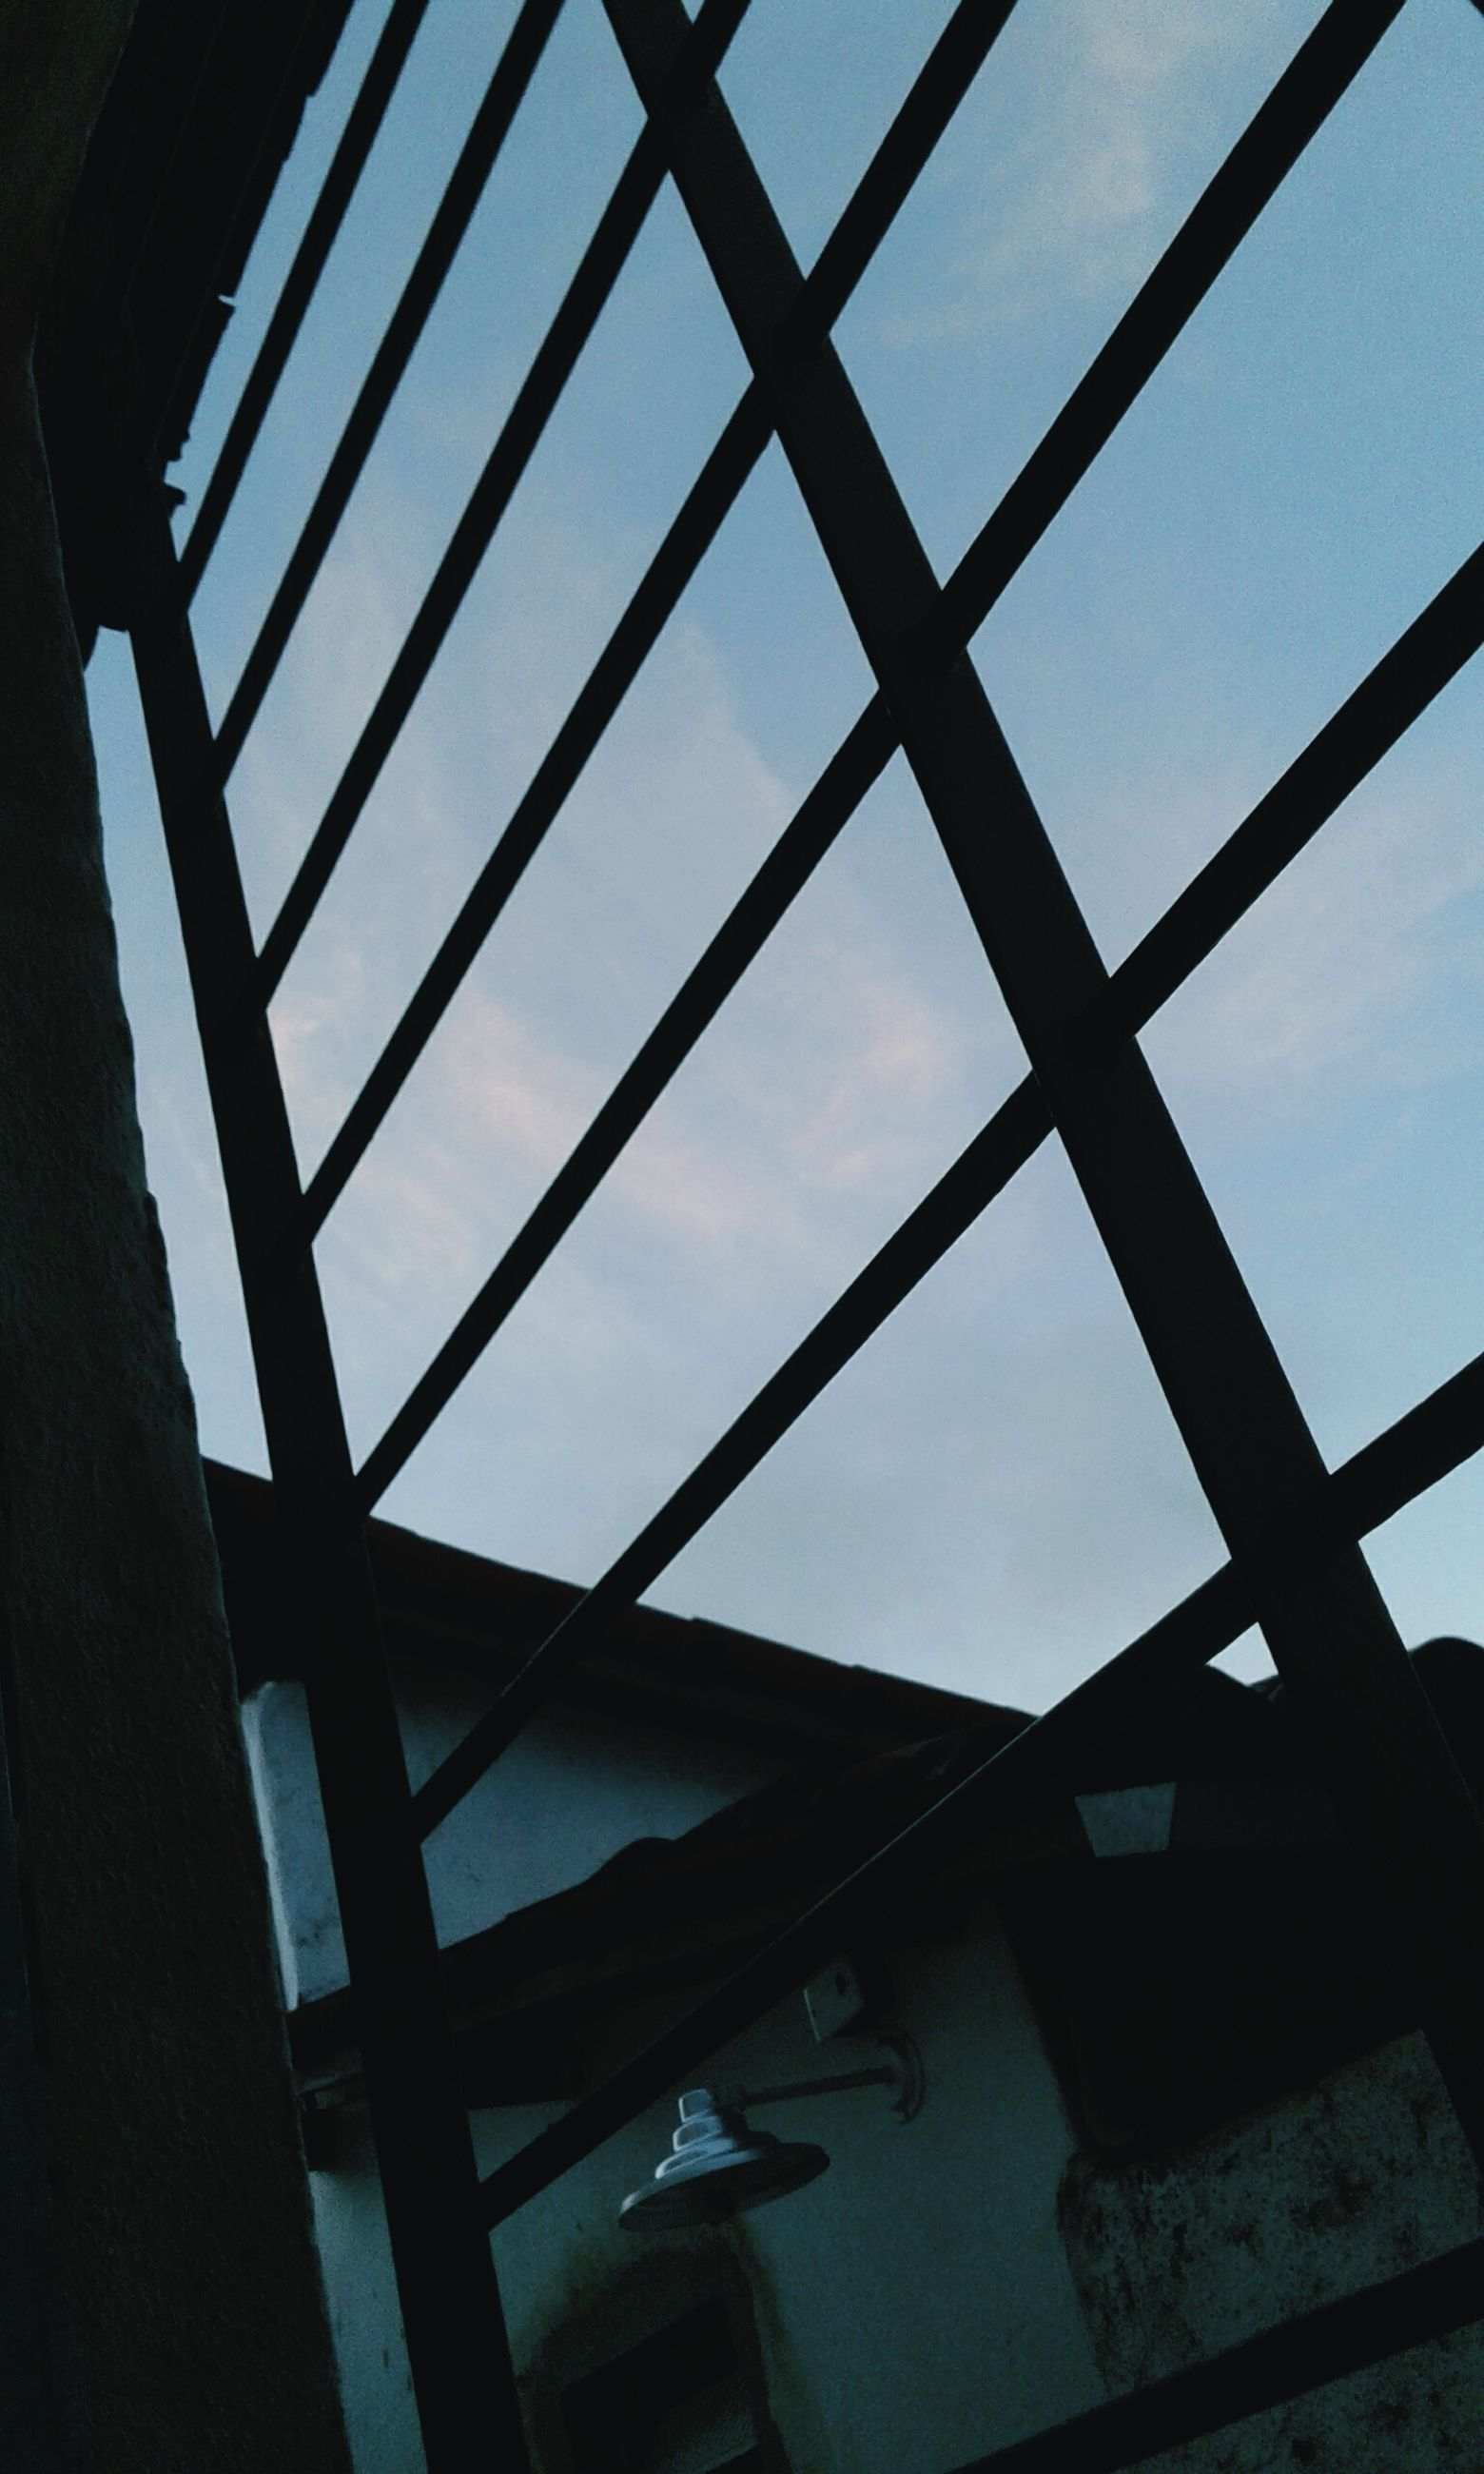 architecture, low angle view, built structure, indoors, sky, bridge - man made structure, day, no people, girder, city